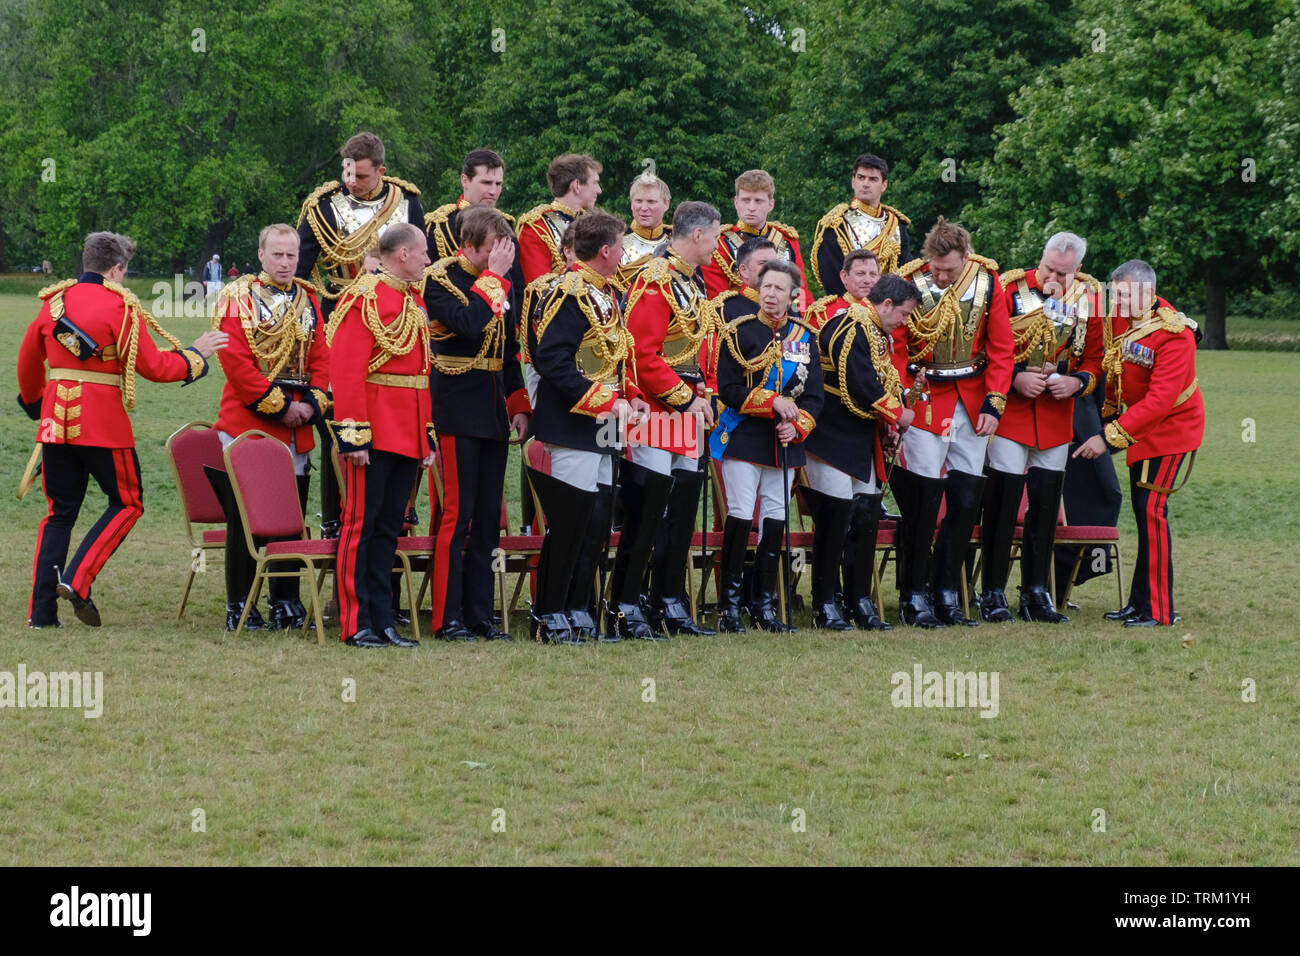 London, England - June 8, 2019:  Her Royal Highness The Princess Royal, Colonel of The Blues and Royals  and Officers of the Household Cavalry Mounted Stock Photo